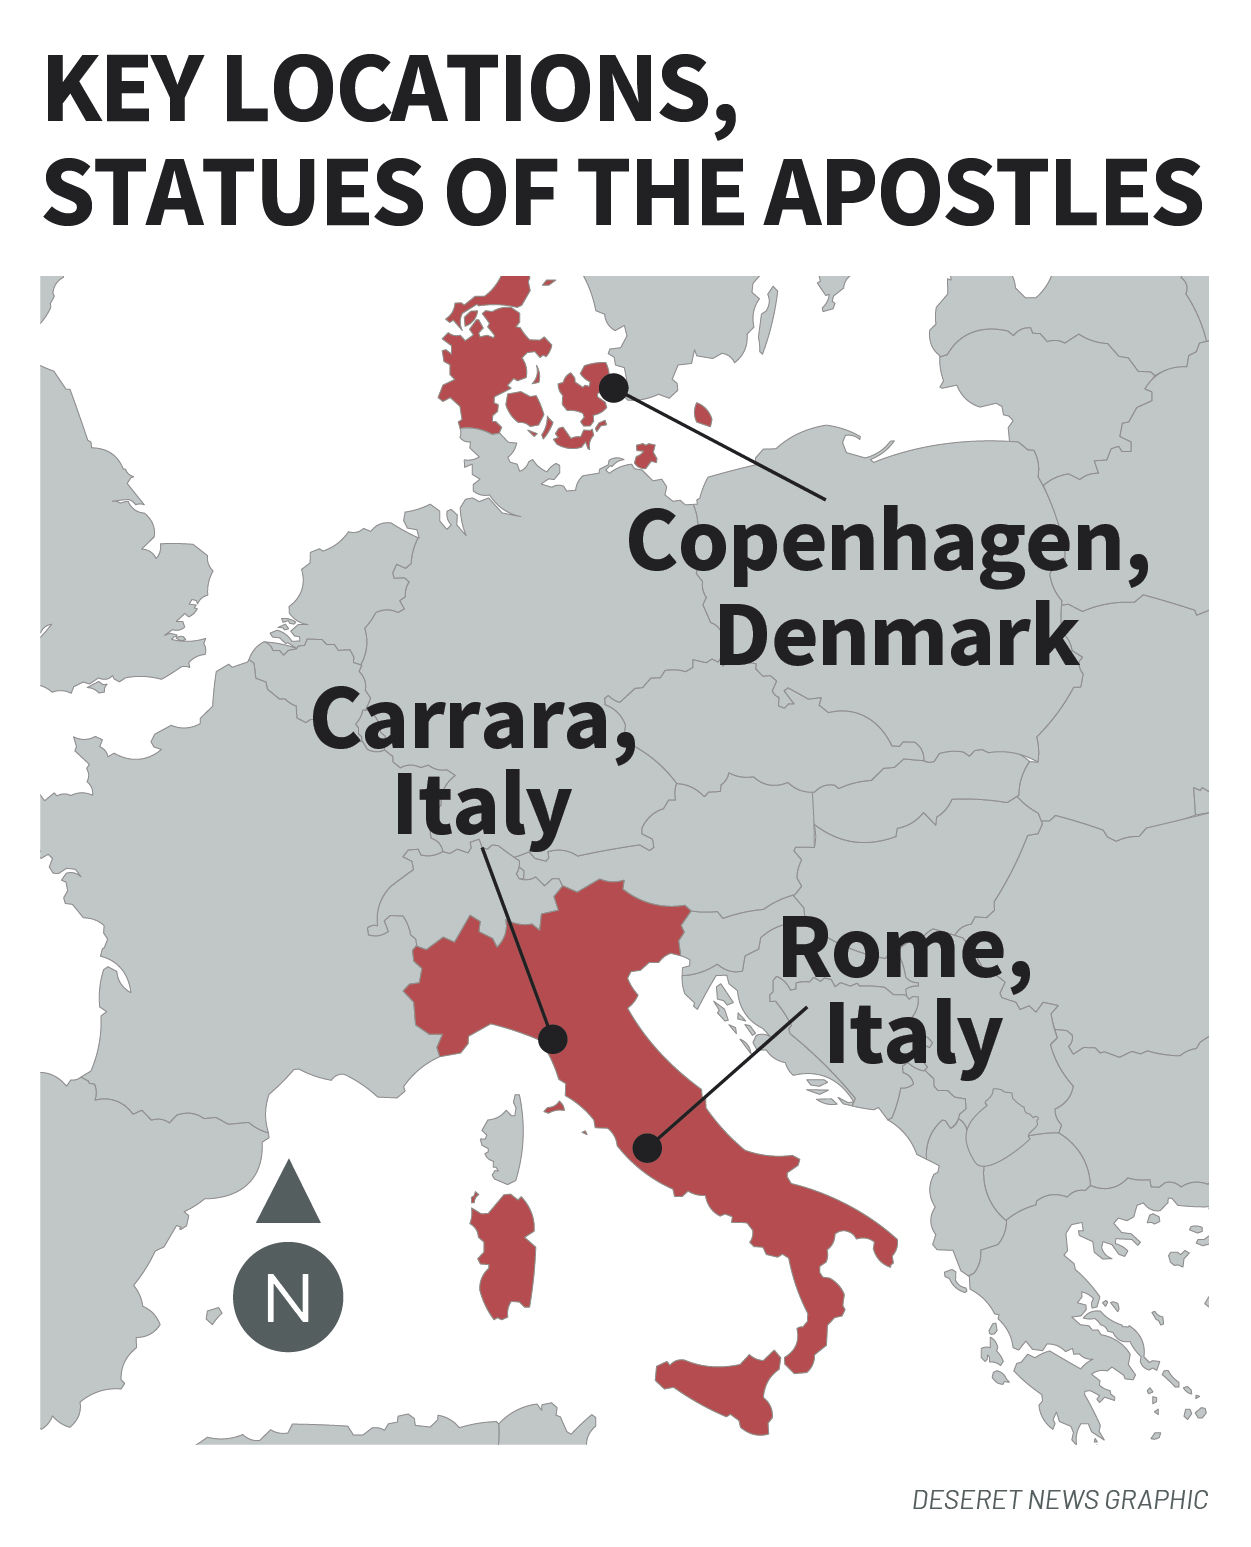 A look at how the Christus and 12 Apostle statues went from ... Carrara Italy Map on comacchio italy map, punta ala italy map, pienza italy map, narni italy map, road distances italy map, capannori italy map, tresana italy map, chianti italy map, codroipo italy map, pianosa italy map, cinque terre italy map, lavagna italy map, bogliasco italy map, florence italy map, coastal italy map, simple italy map, noce italy map, porto venere italy map, arezzo italy map, conegliano italy map,